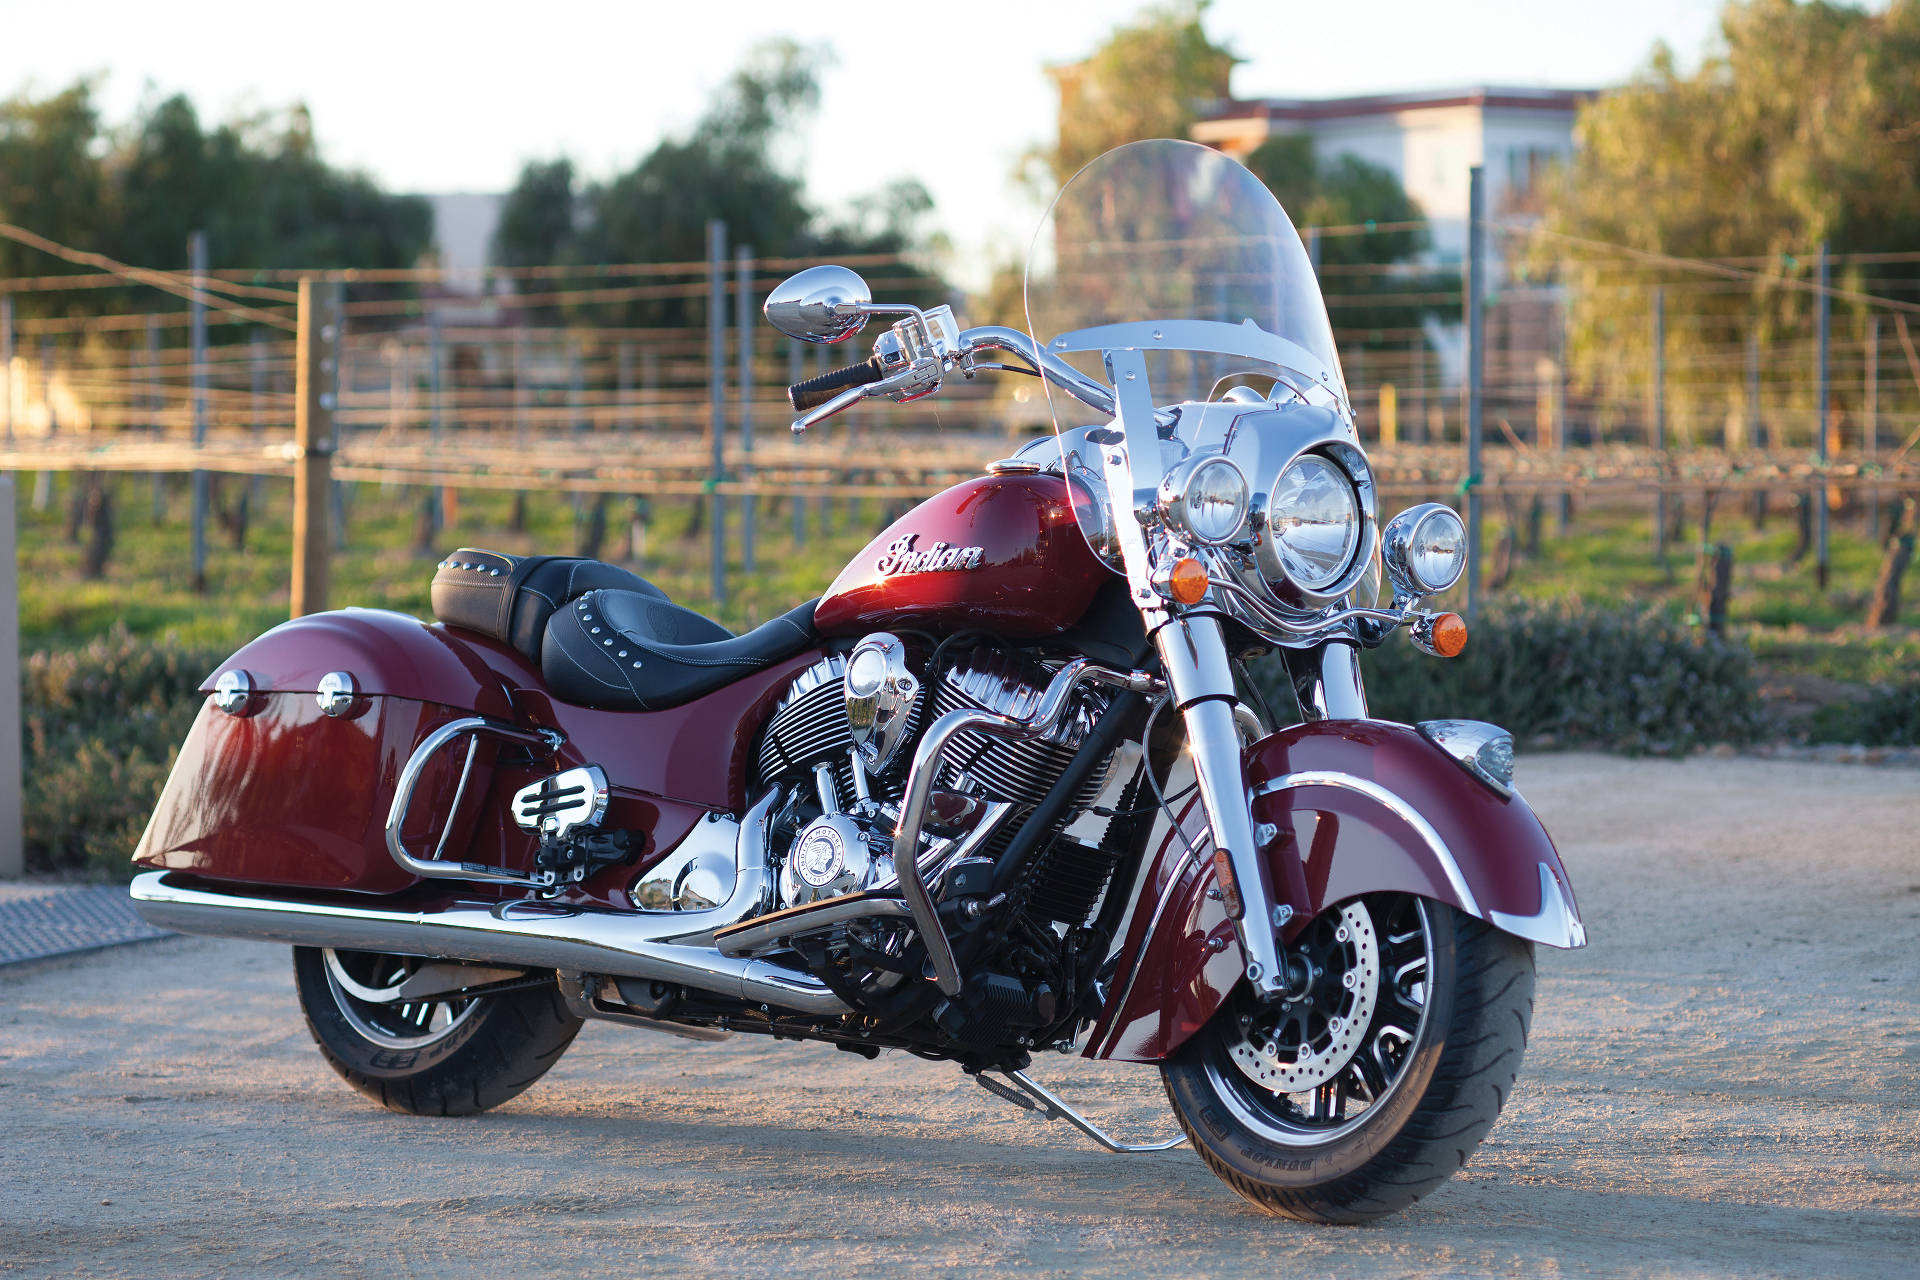 Meet indian motorcycles first model of 2016 indian chief dark - Indian Introduces 2016 Springfield